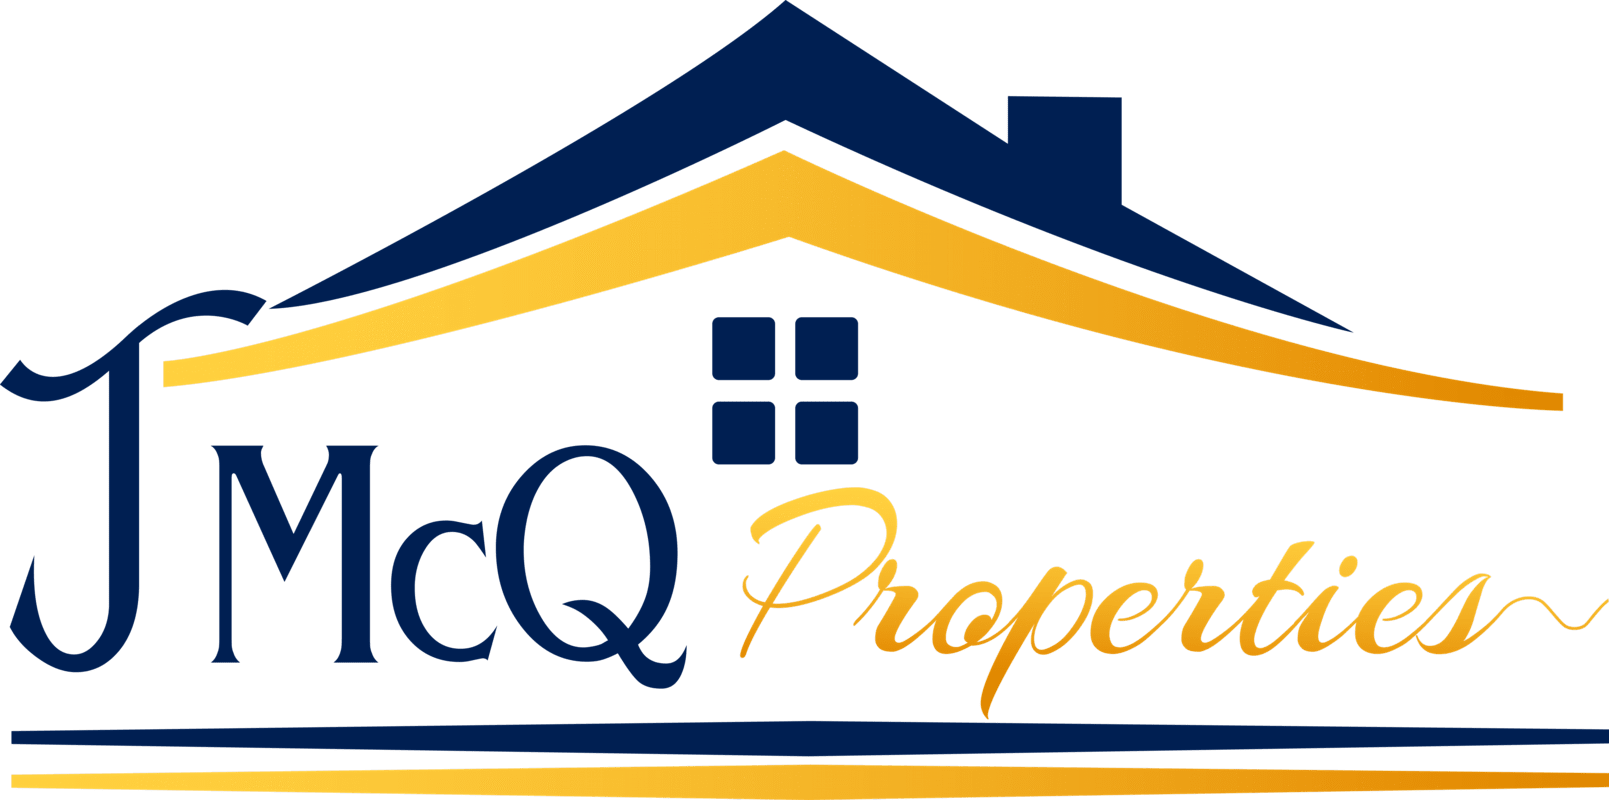 J McQ Properties, LLC